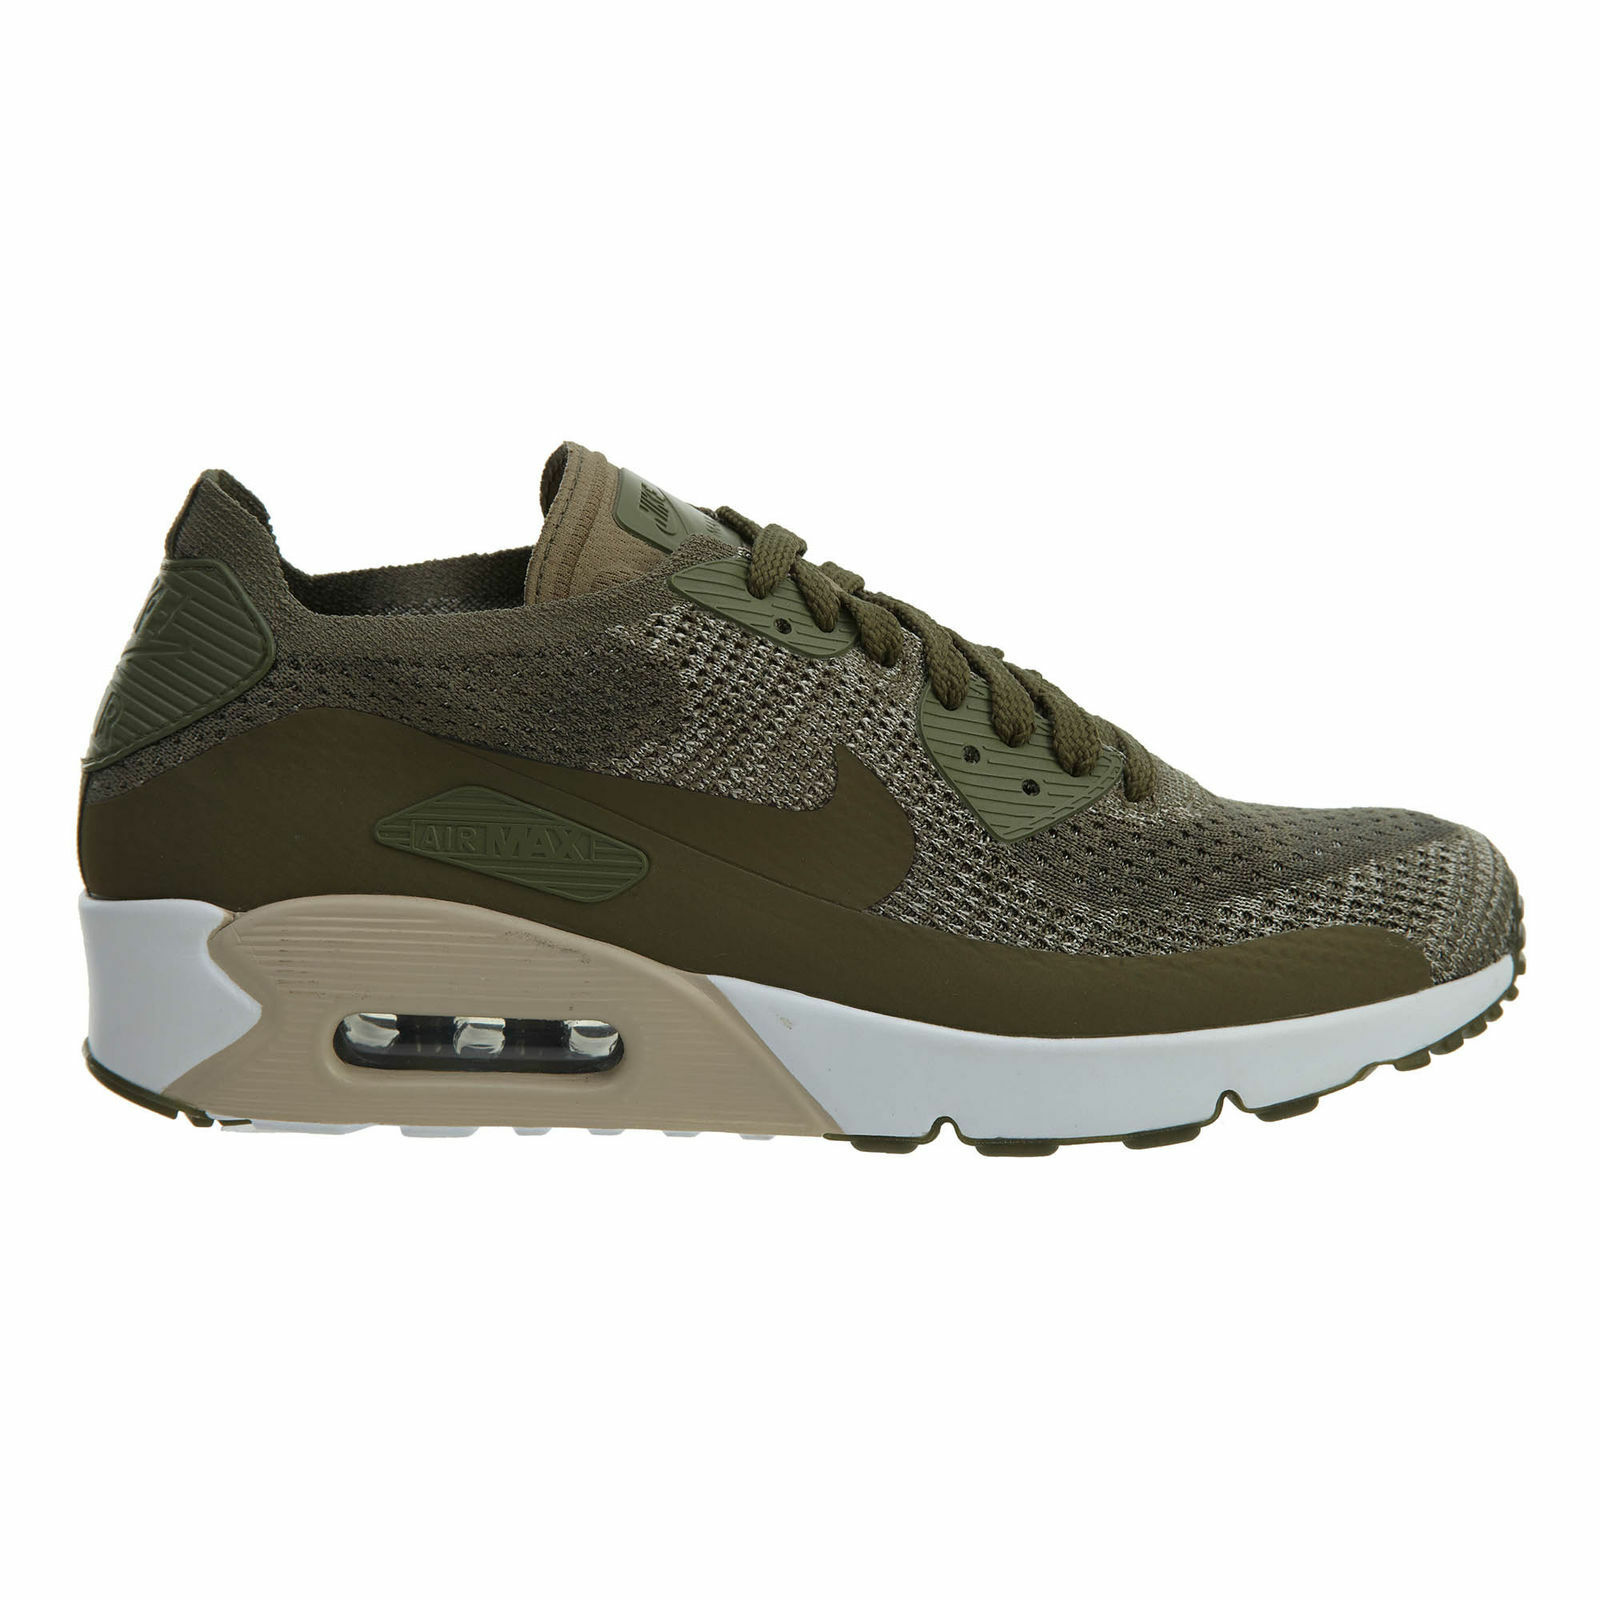 Nike Olive Air Max 90 Ultra 2.0 Flyknit Mens 875943-200 Olive Nike Running Shoes Size 10 48fd2f